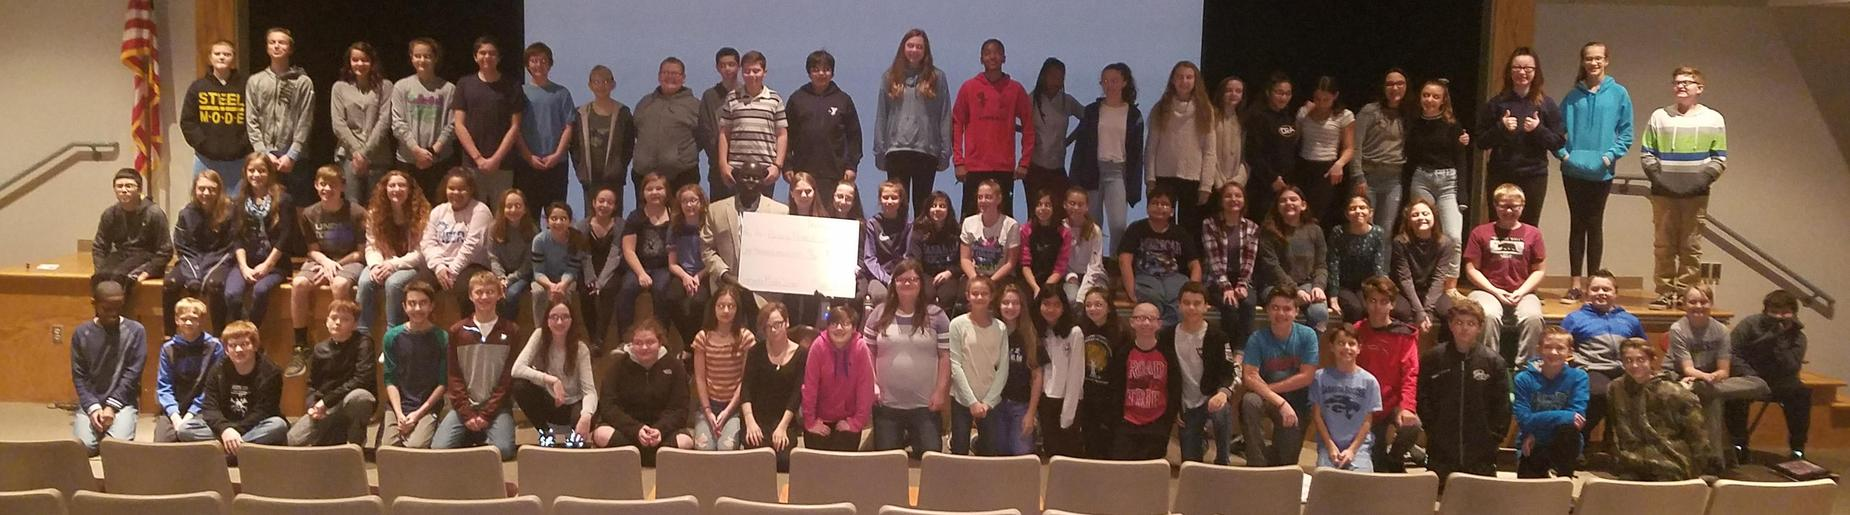 Gananda 7th Grade Students Raise Over $1,000 for Building Minds In South Sudan